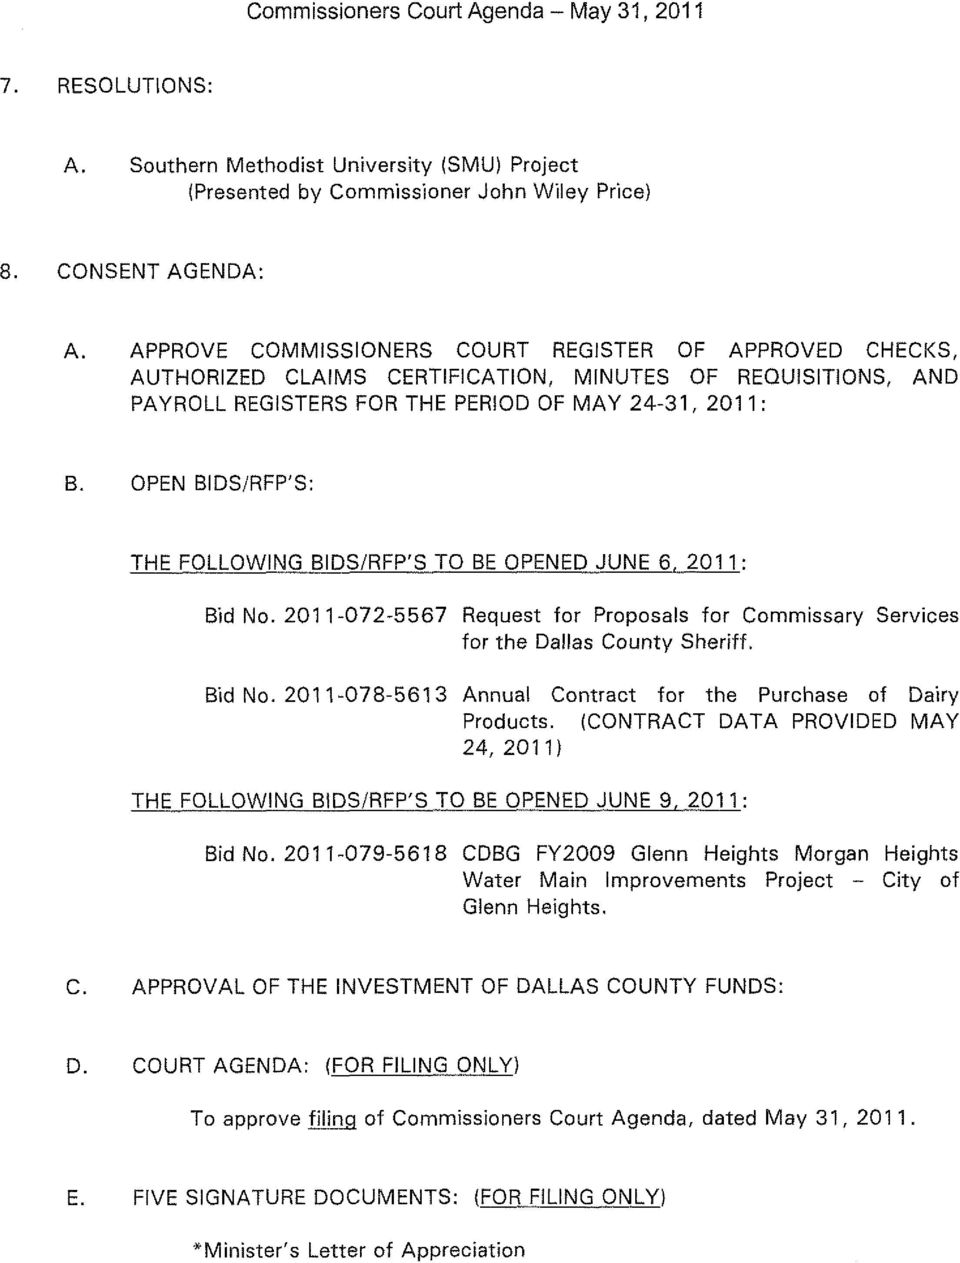 OPEN BIDS/RFP'S: THE FOLLOWING BIDS/RFP'S TO BE OPENED JUNE 6, 2011: Bid No. 2011-072-5567 Request for Proposals for Commissary Services for the Dallas County Sheriff. Bid No. 2011-078-5613 Annual Contract for the Purchase of Dairy Products.